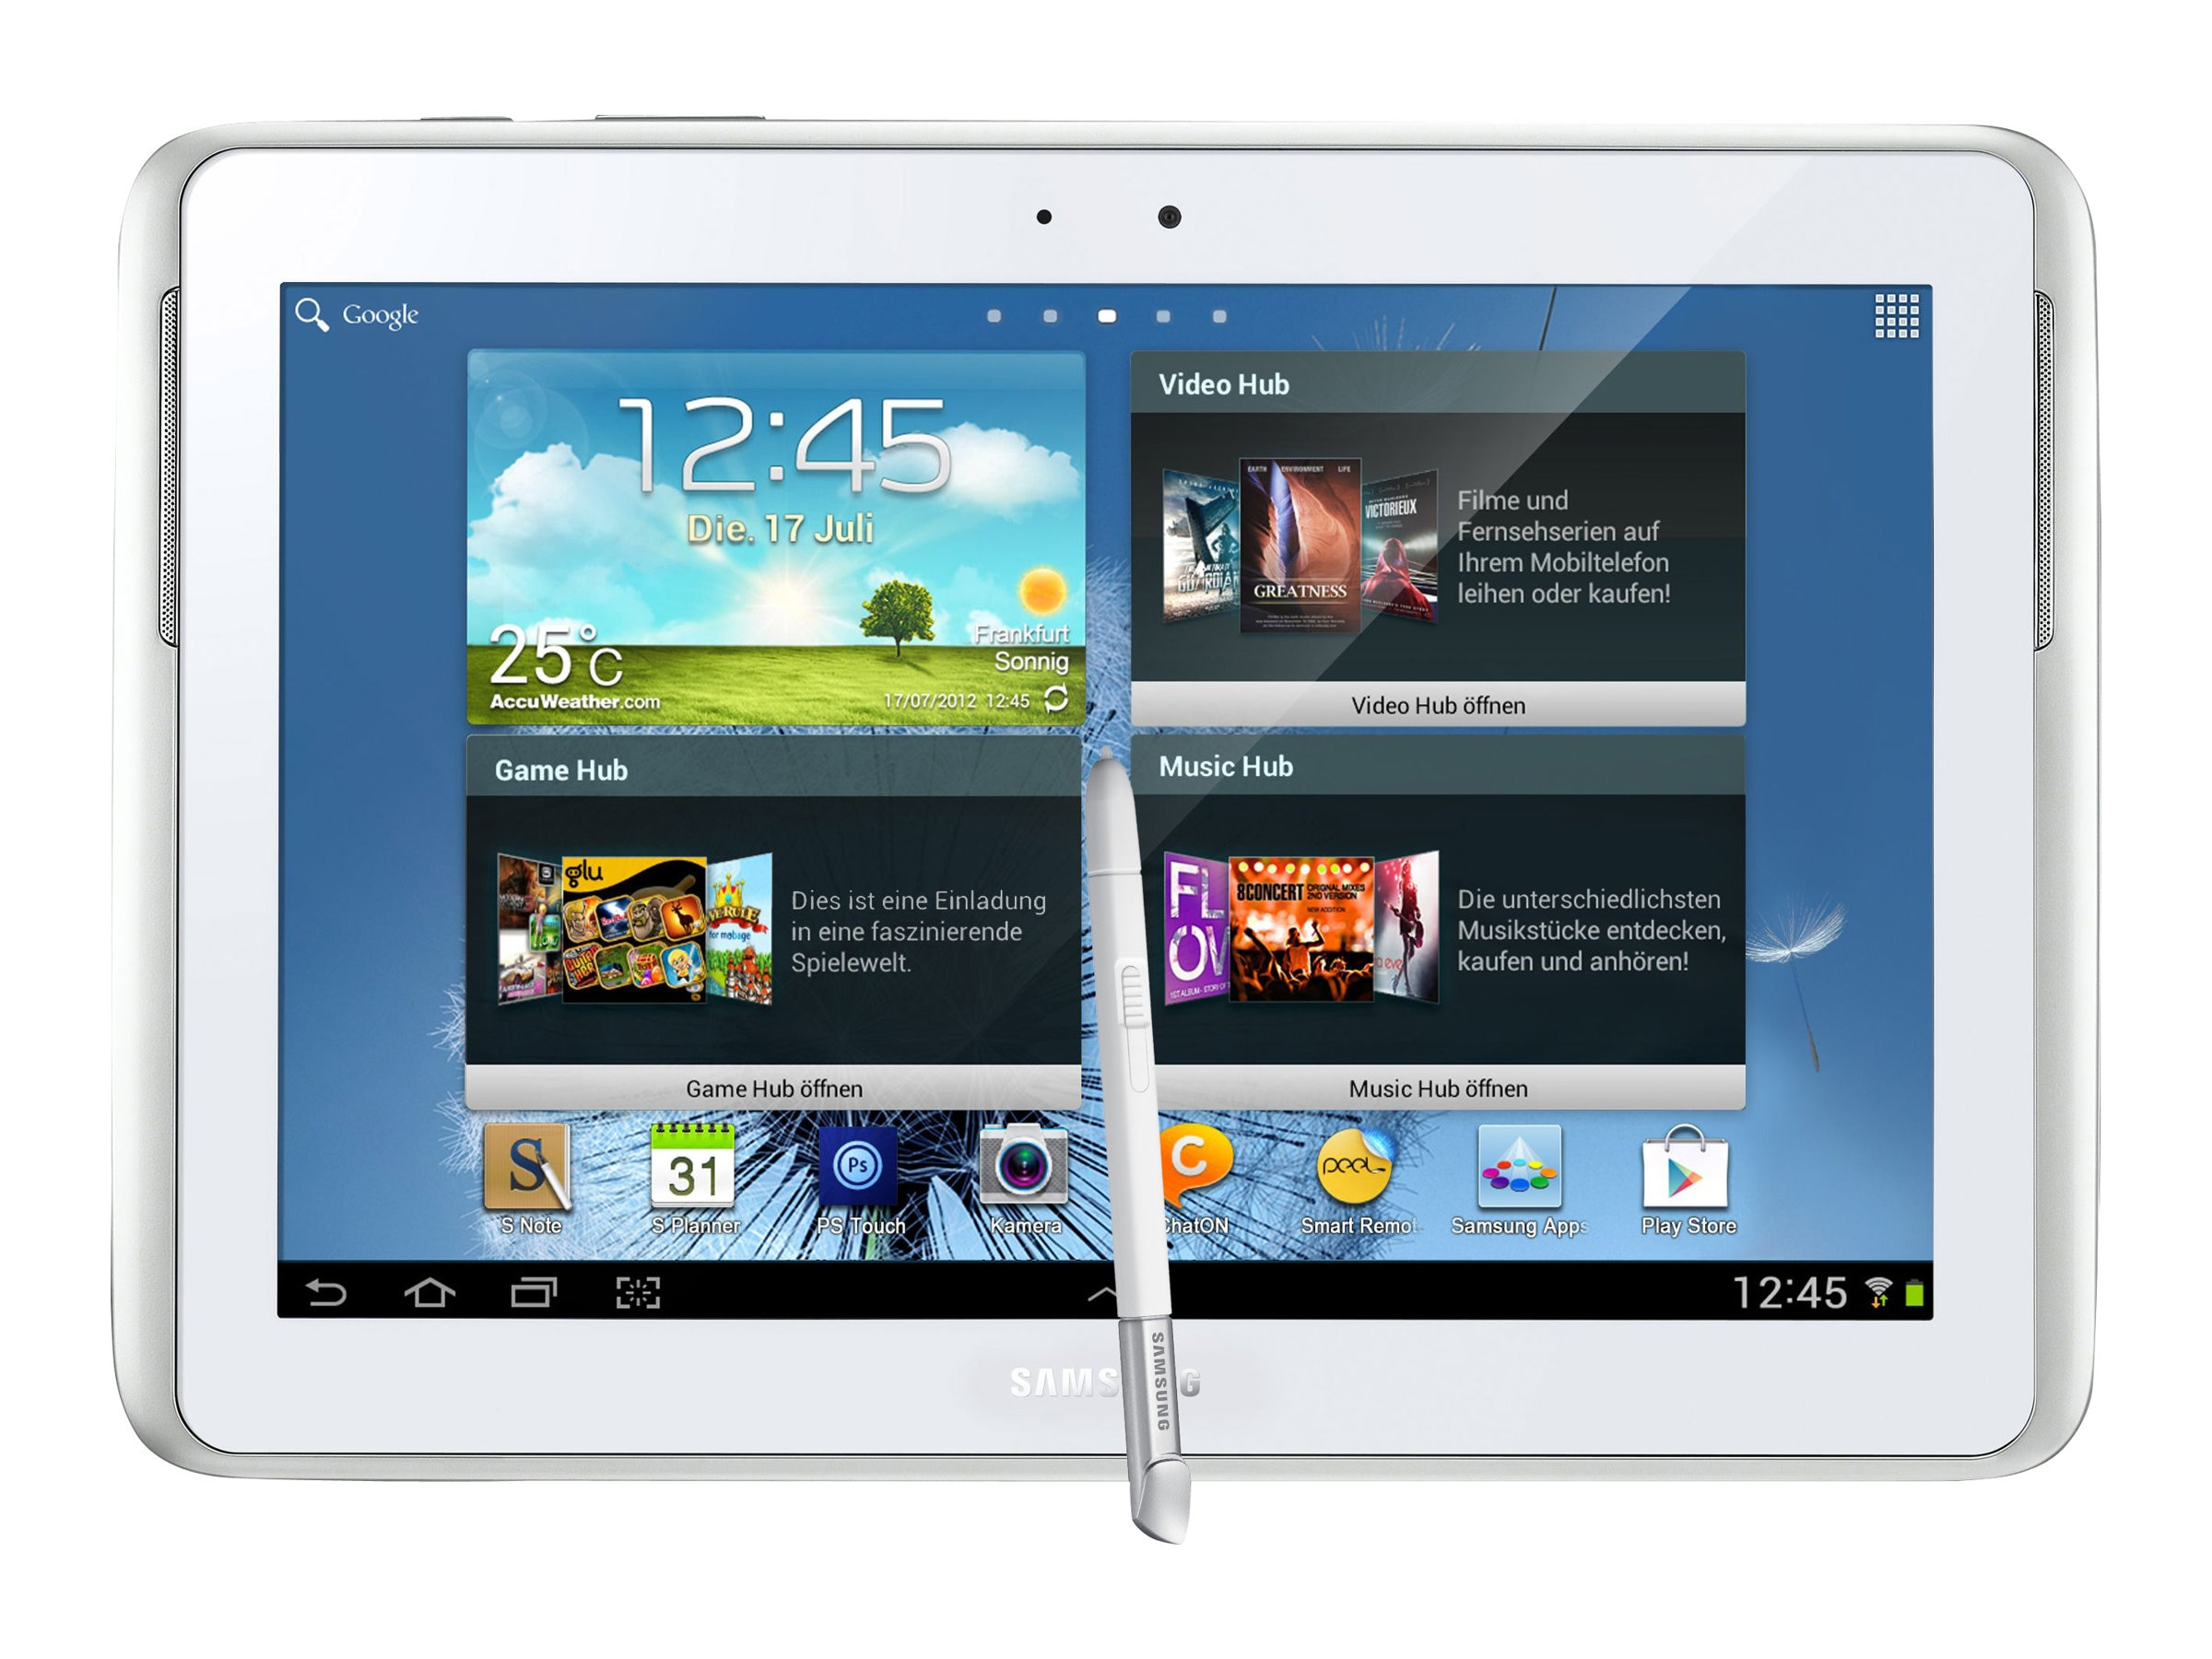 Samsung Galaxy Note 10.1 2014 Edition QC 1.9GHz 3GB 16GB abgn ac BT 2xWC 10.1 WQXGA Touch Android 4.3 White